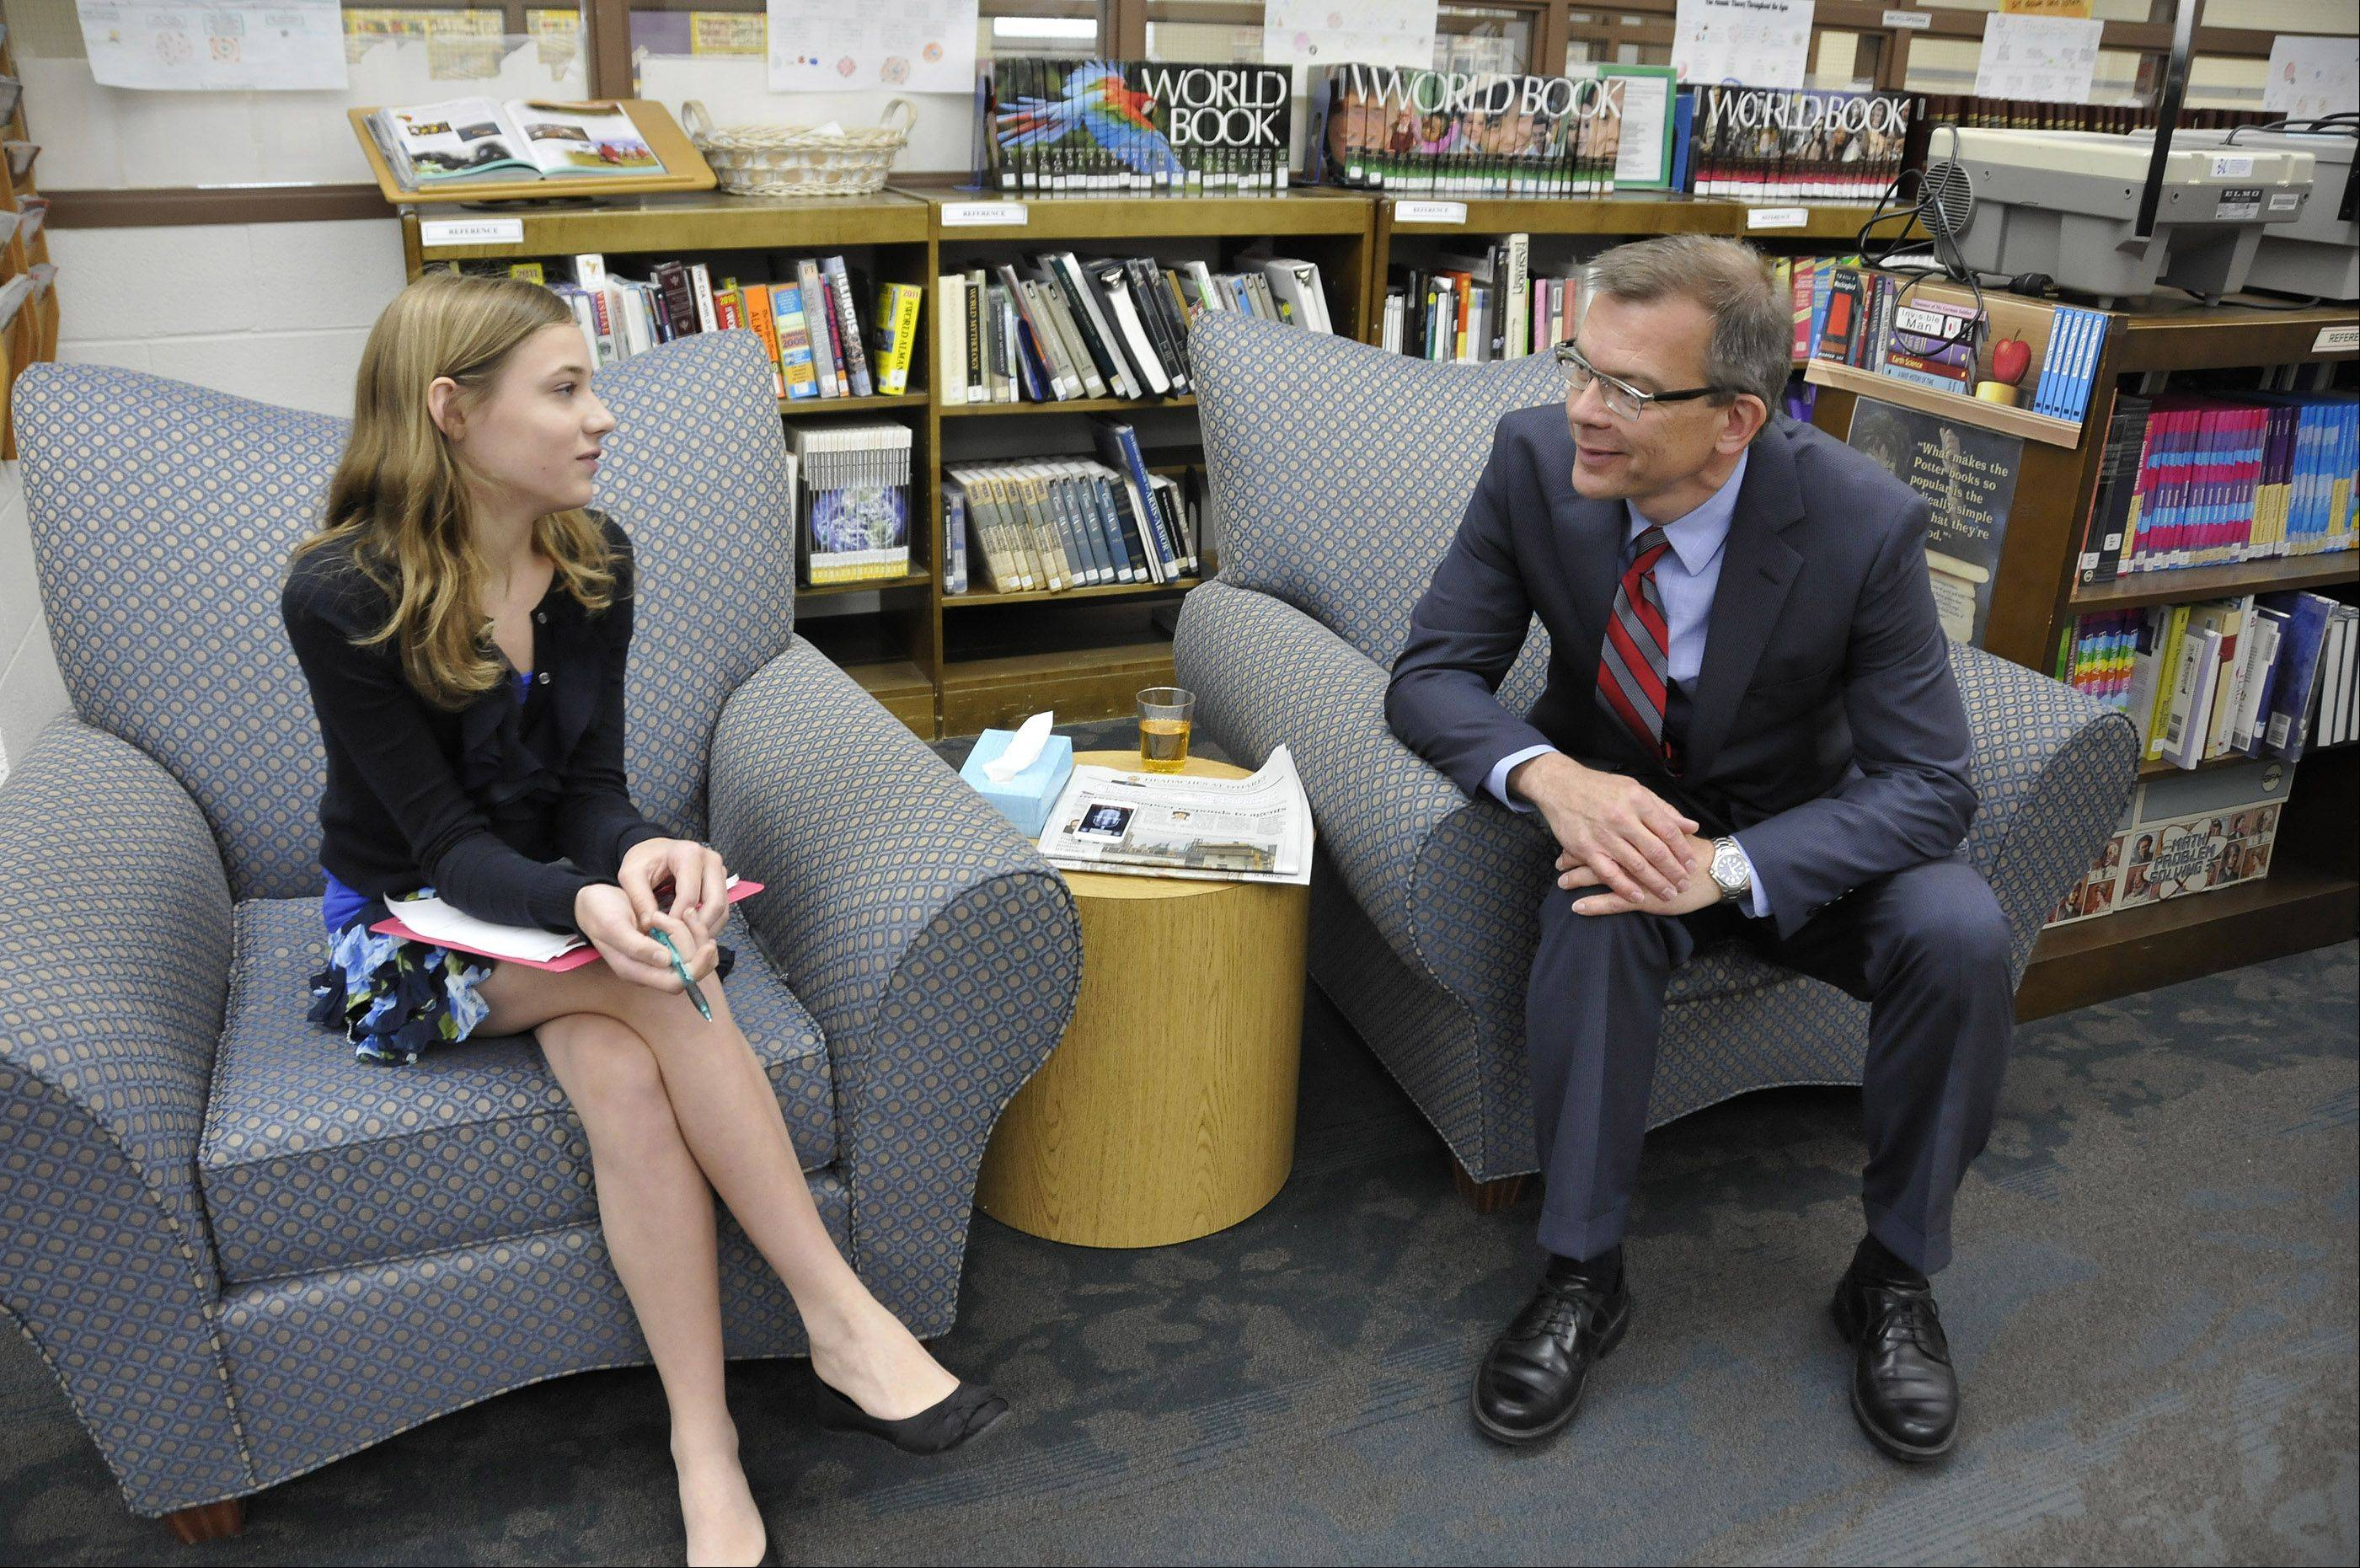 After presenting awards to area school officials and teachers at Peacock Middle School in Itasca, State Schools Superintendent Chris Koch sat down for an interview Monday with Nicole Marcinkus. She is a seventh-grader at Peacock and landed an interview for the school's student newspaper.